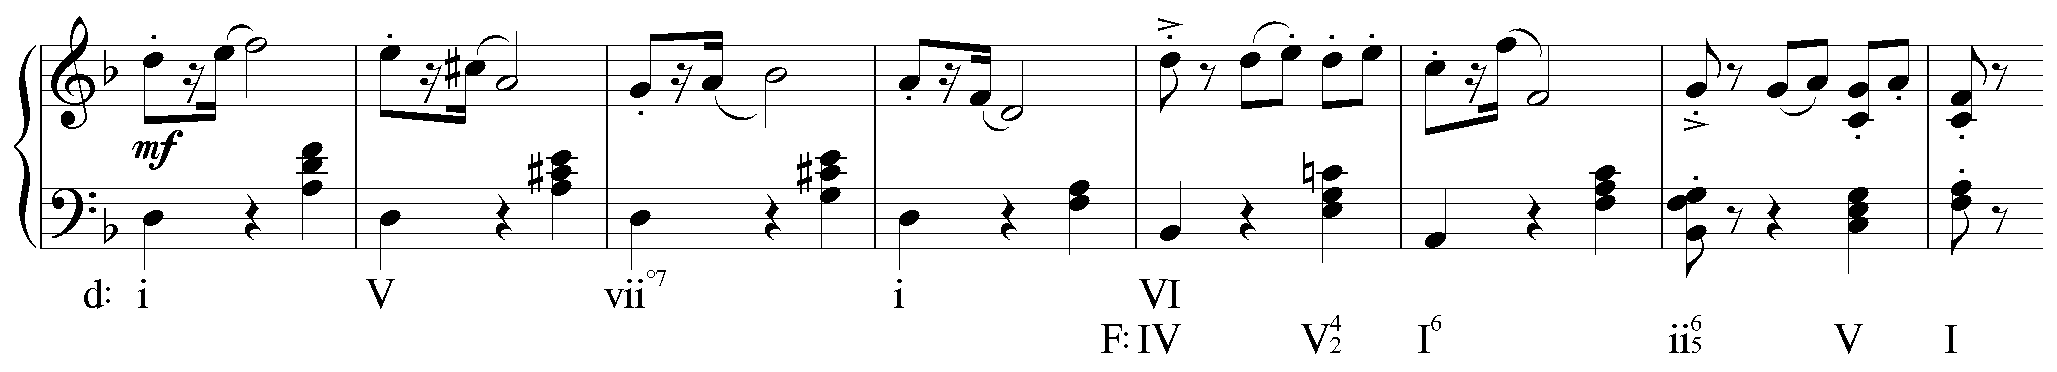 common-chord modulation in tchaikovsky, mazurka op. 39, no. 10.png